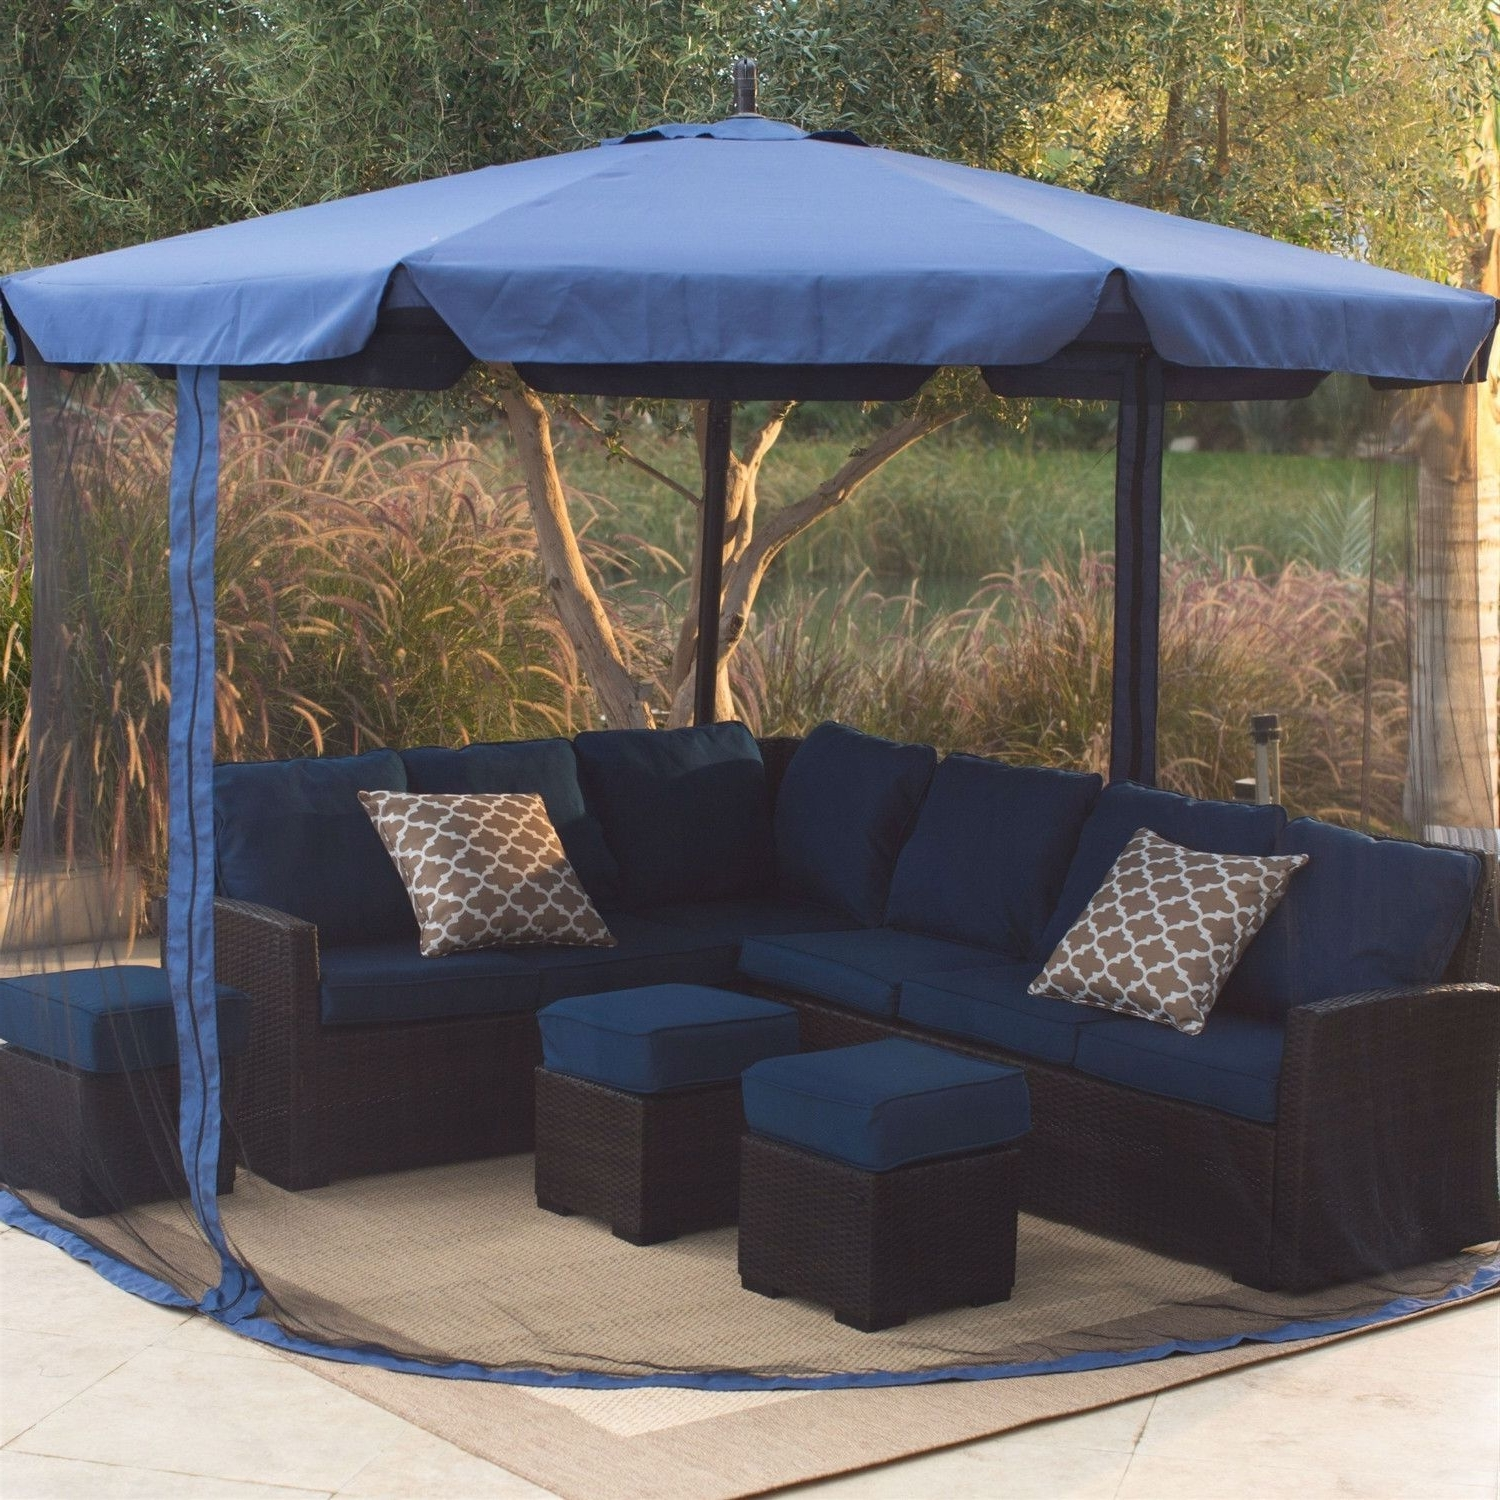 2019 11 Ft Cantilever Crank Lift Patio Umbrella In Blue With Removable Throughout 11 Ft Patio Umbrellas (View 6 of 20)